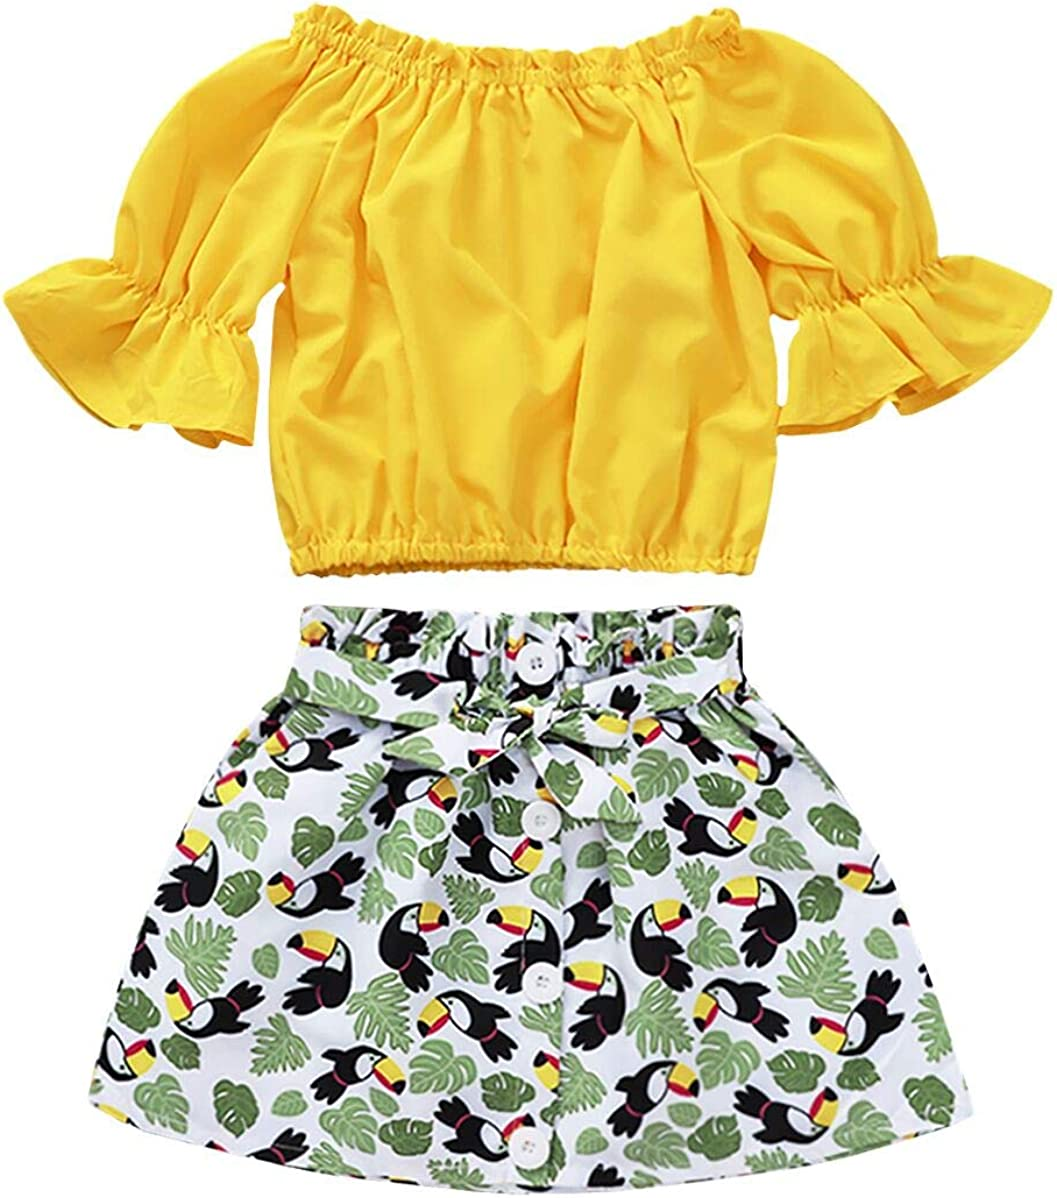 Jurebecis Baby Girl Floral Outfit Toddler Kids Lace Halter Tank Top+Boho Skirt Set Dress Summer Clothes 1-6 Years